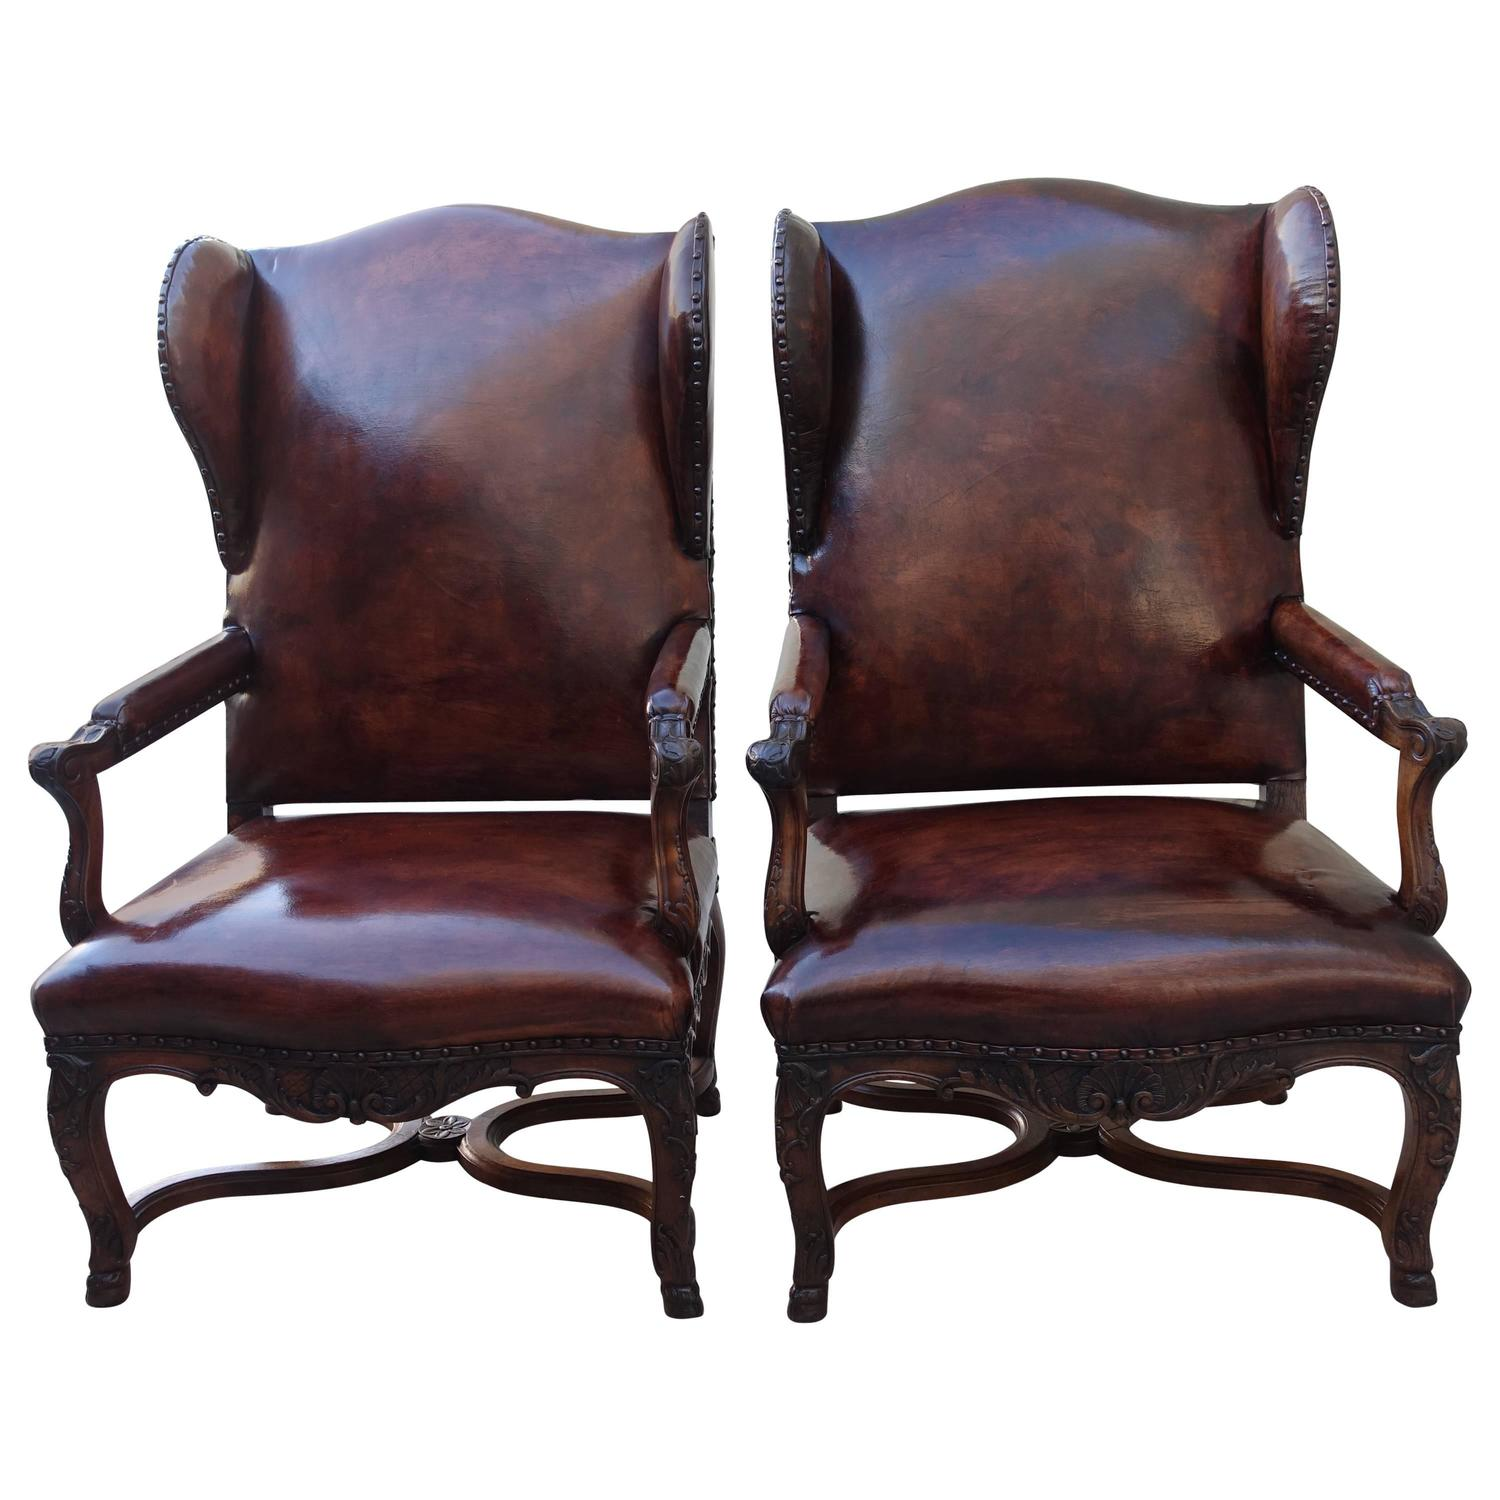 Pair Of French Regence Style Leather Armchairs